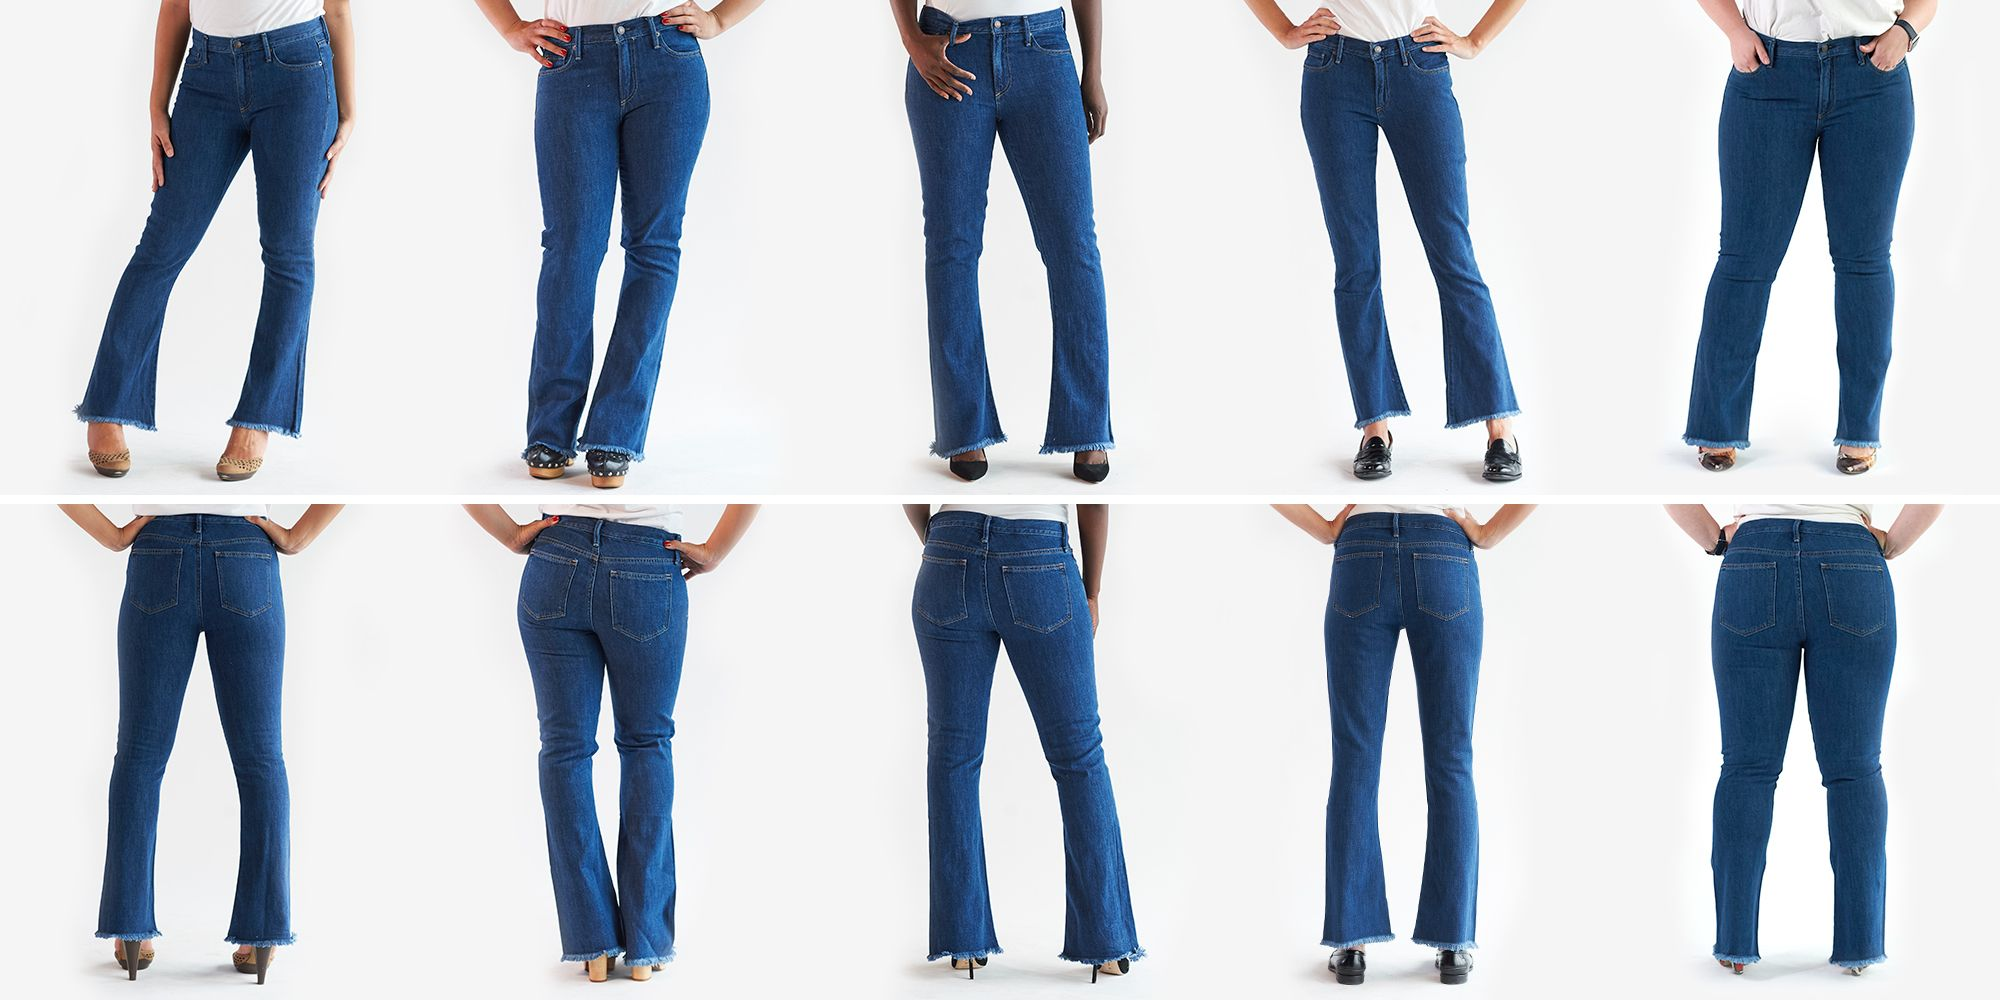 e3430d1dea84 10 Best Types of Jeans for Women – Flattering Denim Styles for All ...